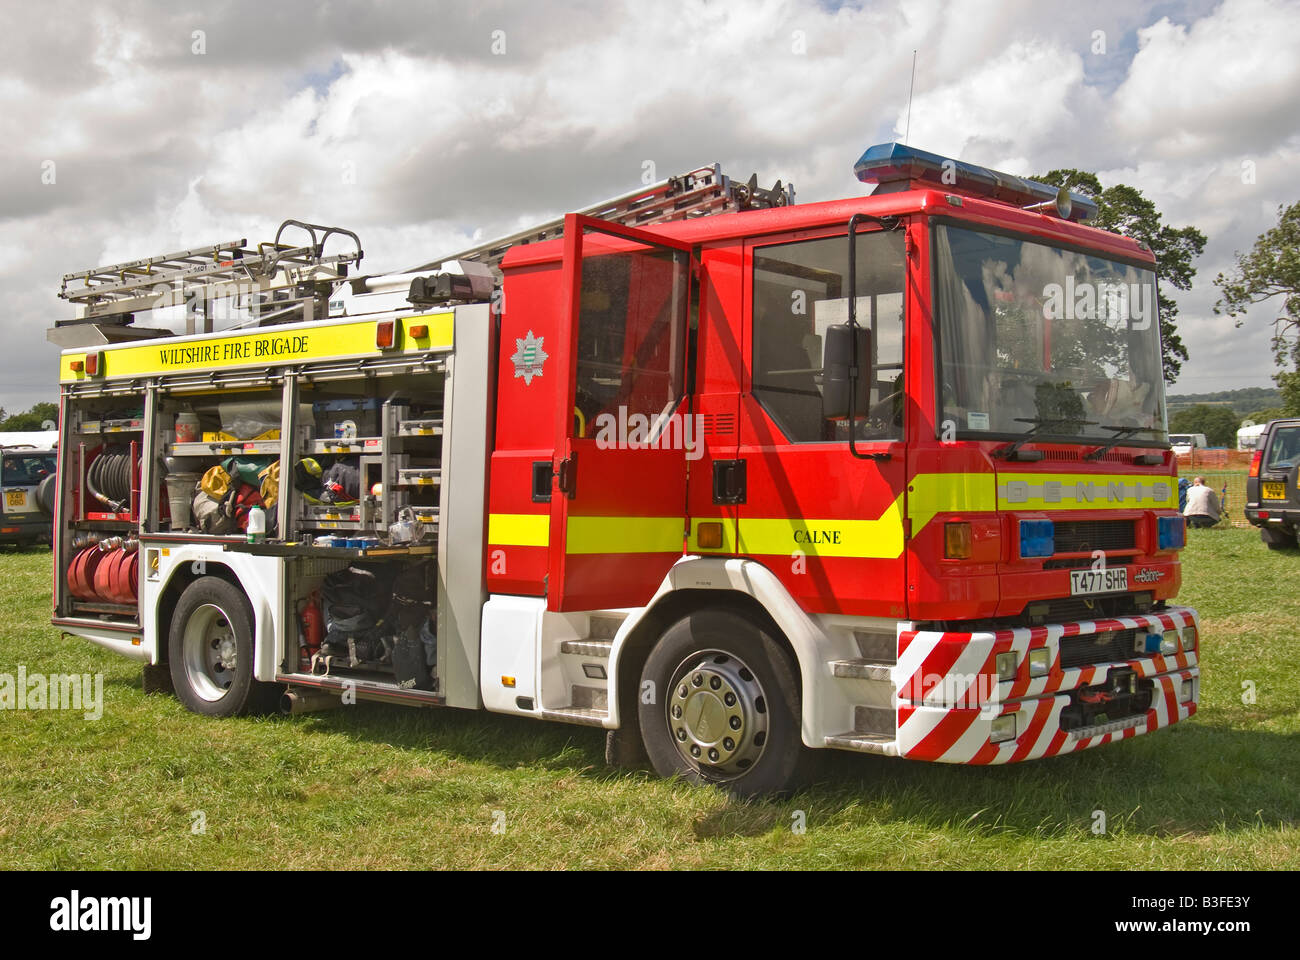 Fire Engine Building For Sale Uk